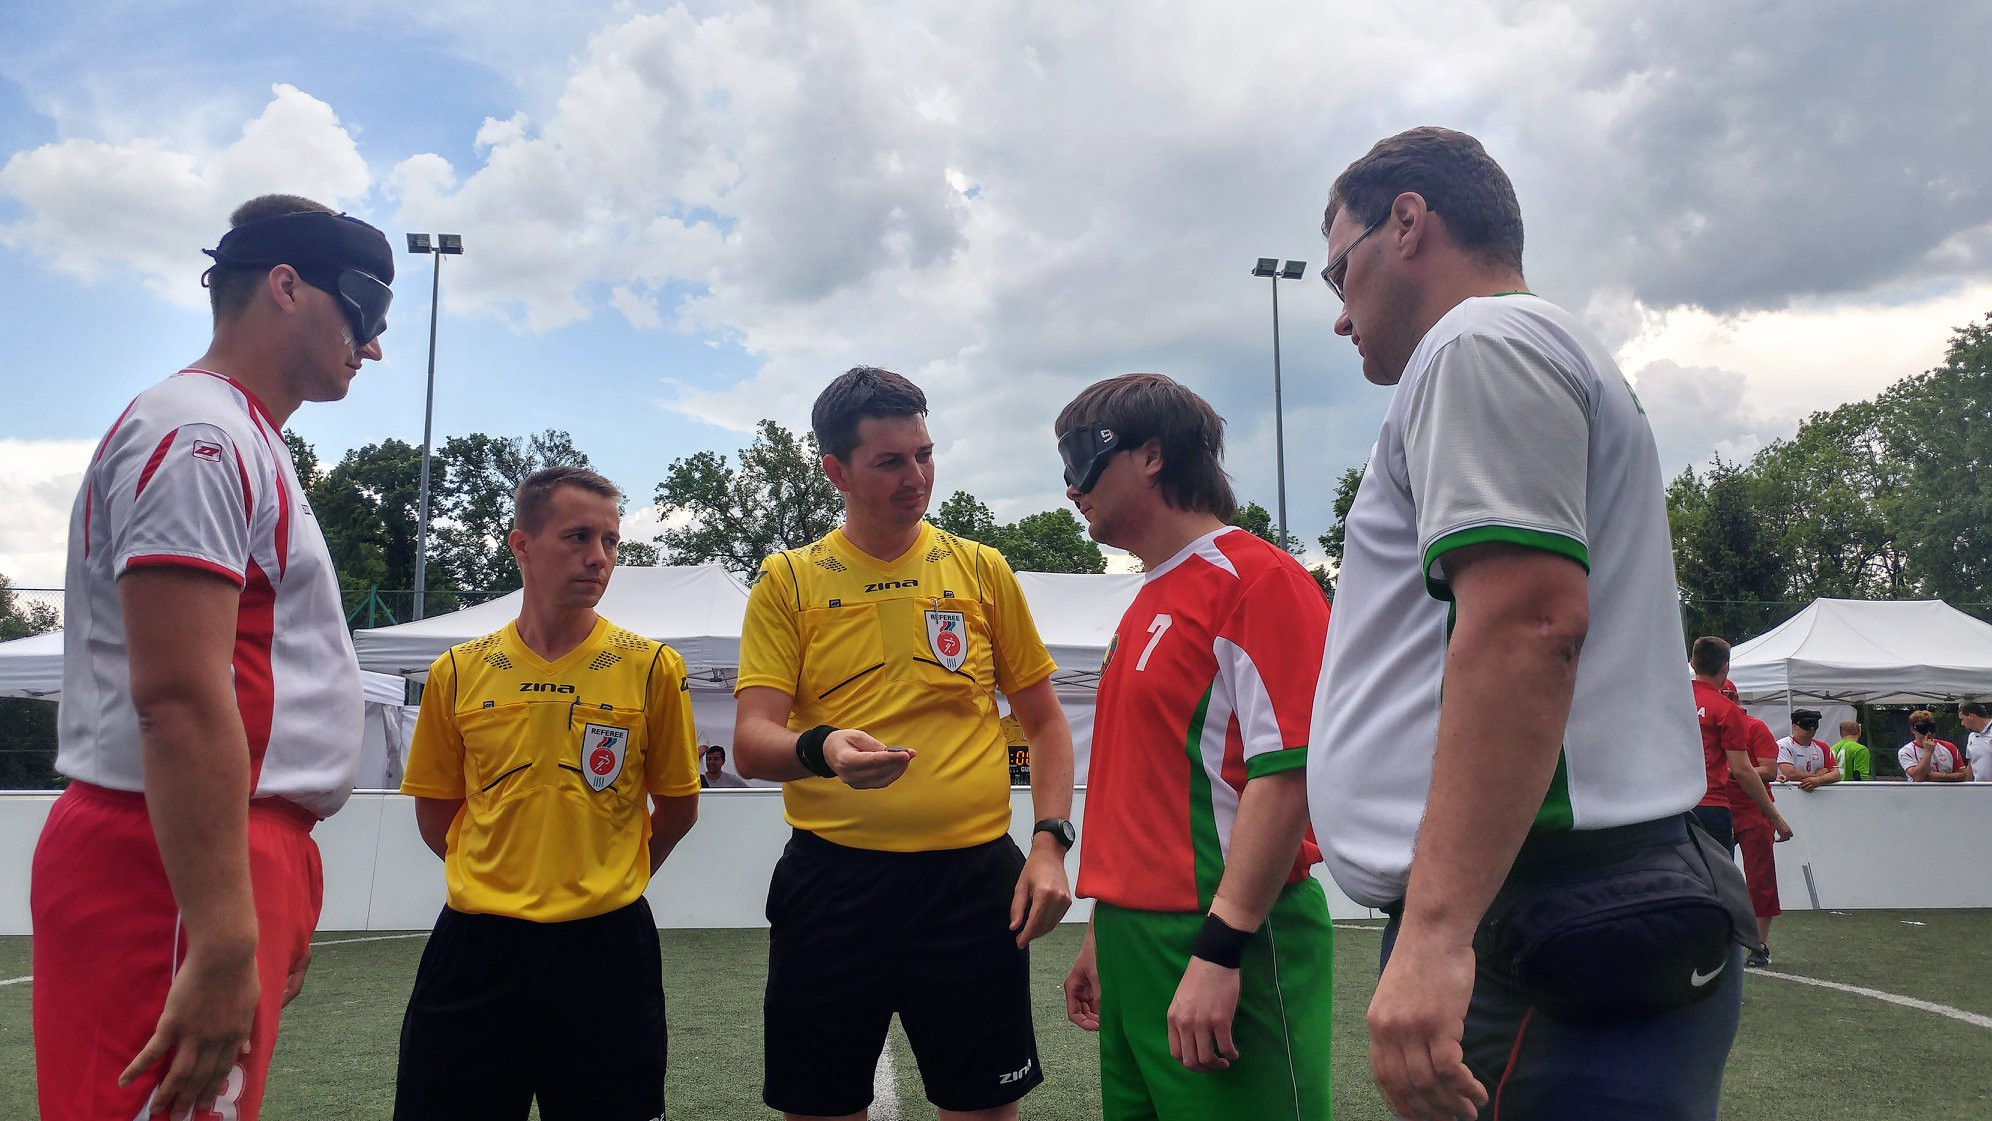 Poland and Ireland to meet in final of Blind Football Euro Challenge Cup